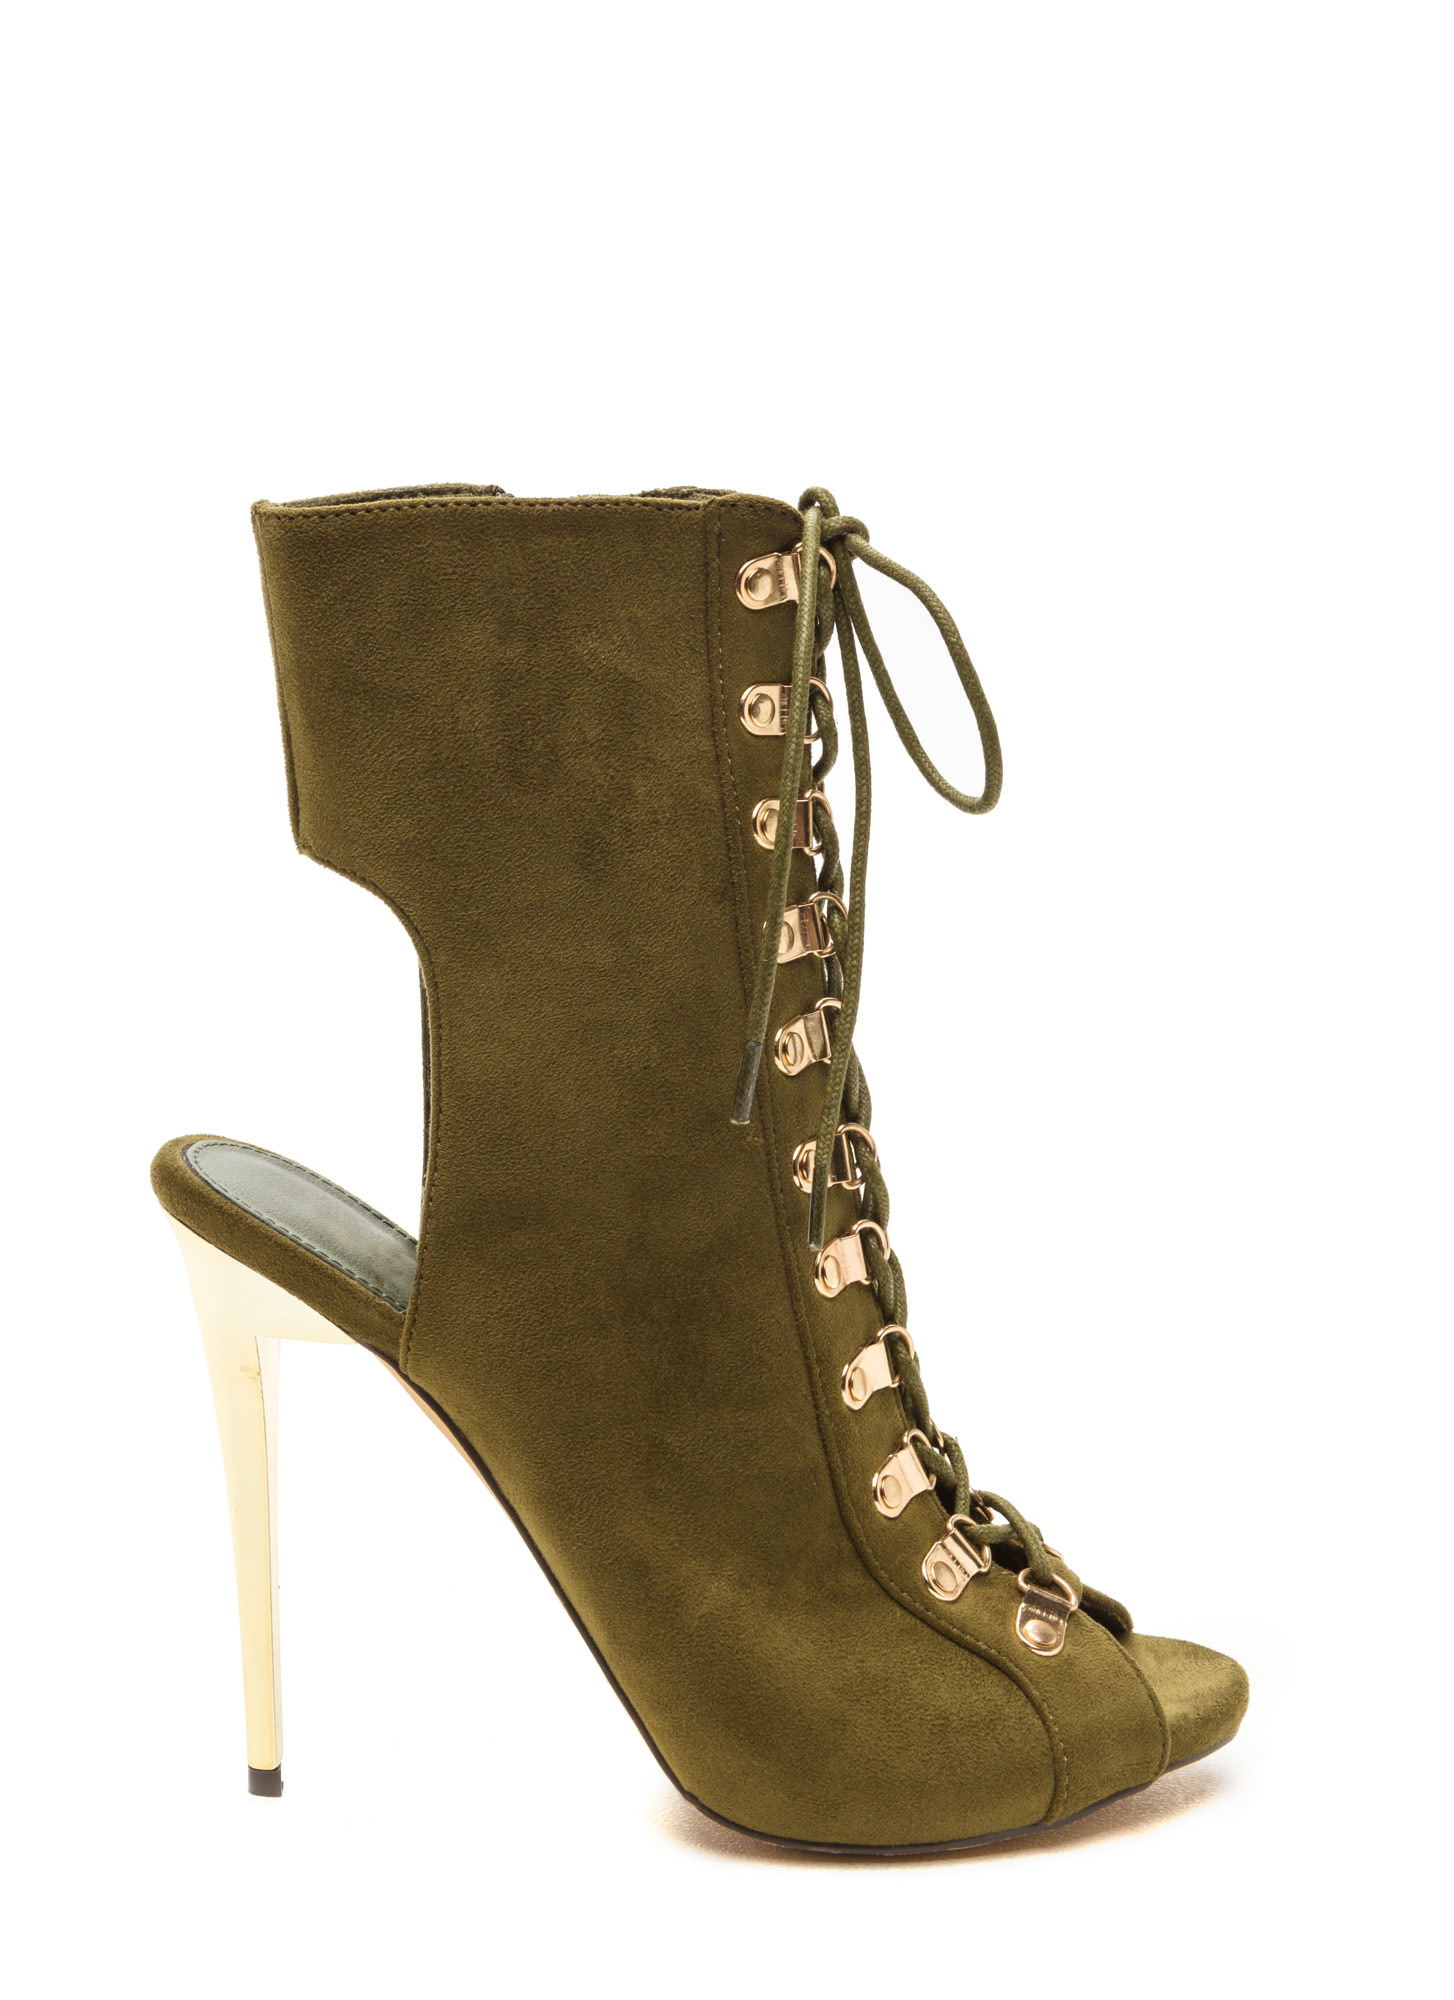 She Wants The D-Rings Peep-Toe Booties OLIVE